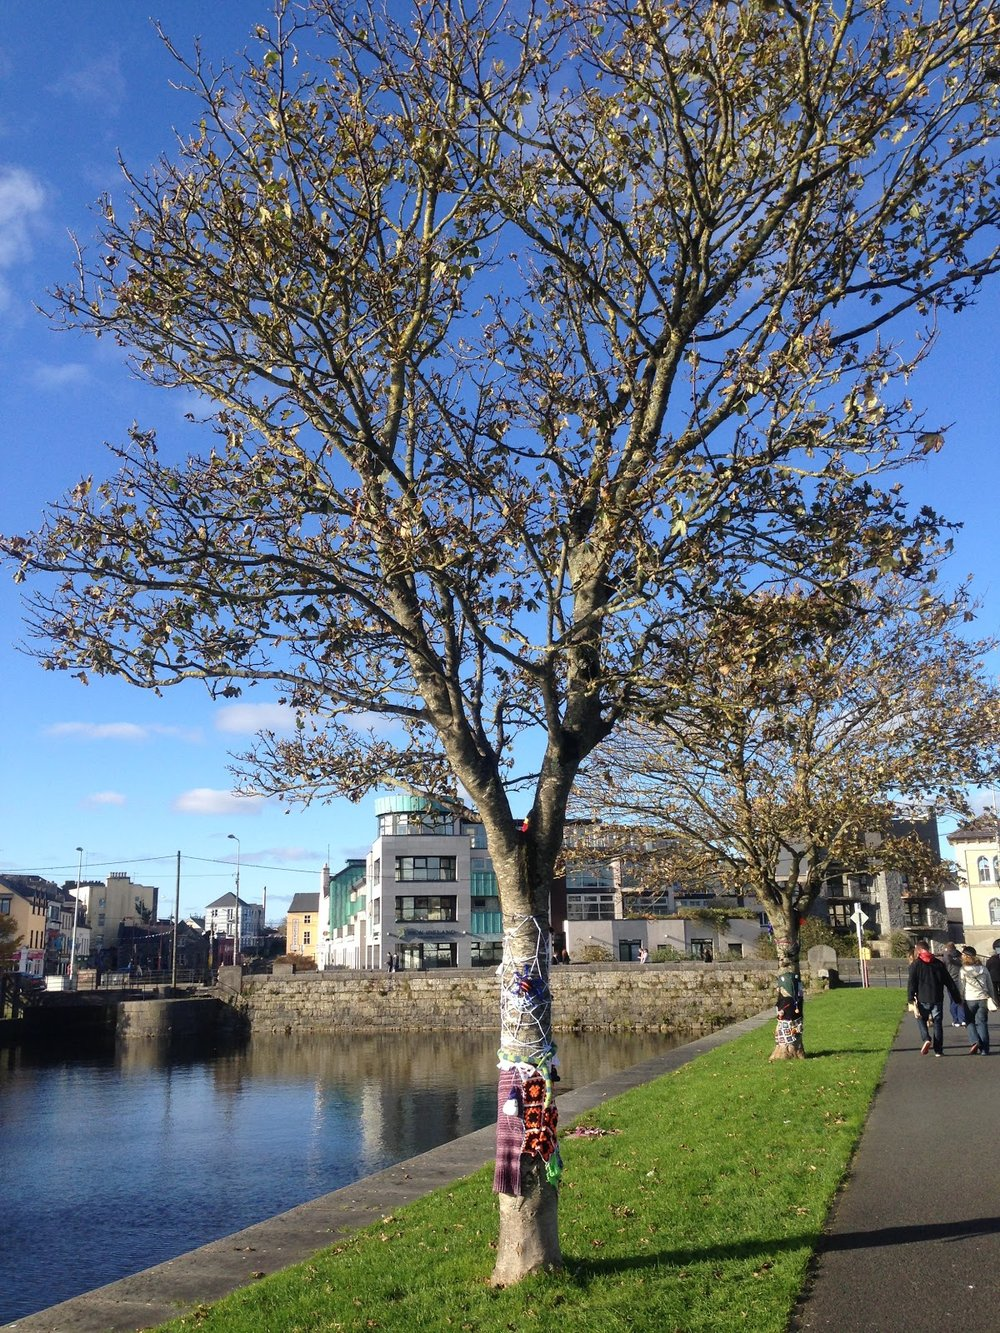 The two trees yarnbombed for Halloween alongside the Corrib River.